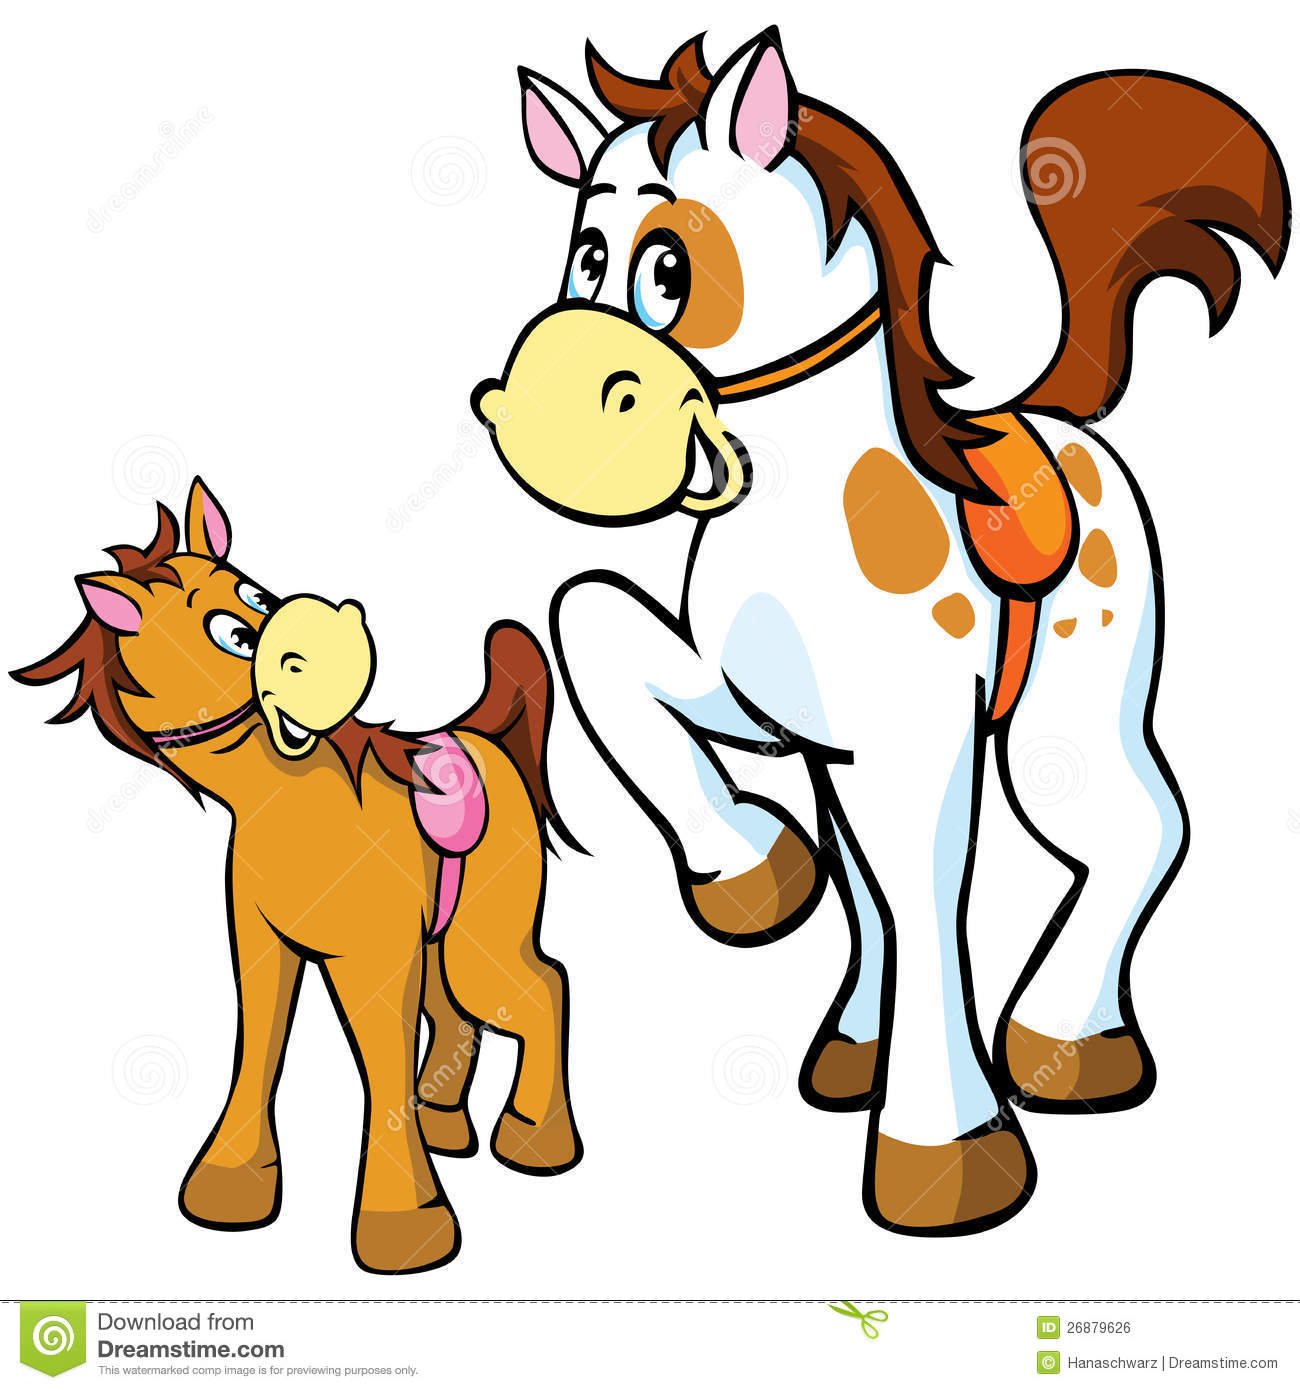 Horses Illustration Royalty Free Stock Image - Image: 26879626